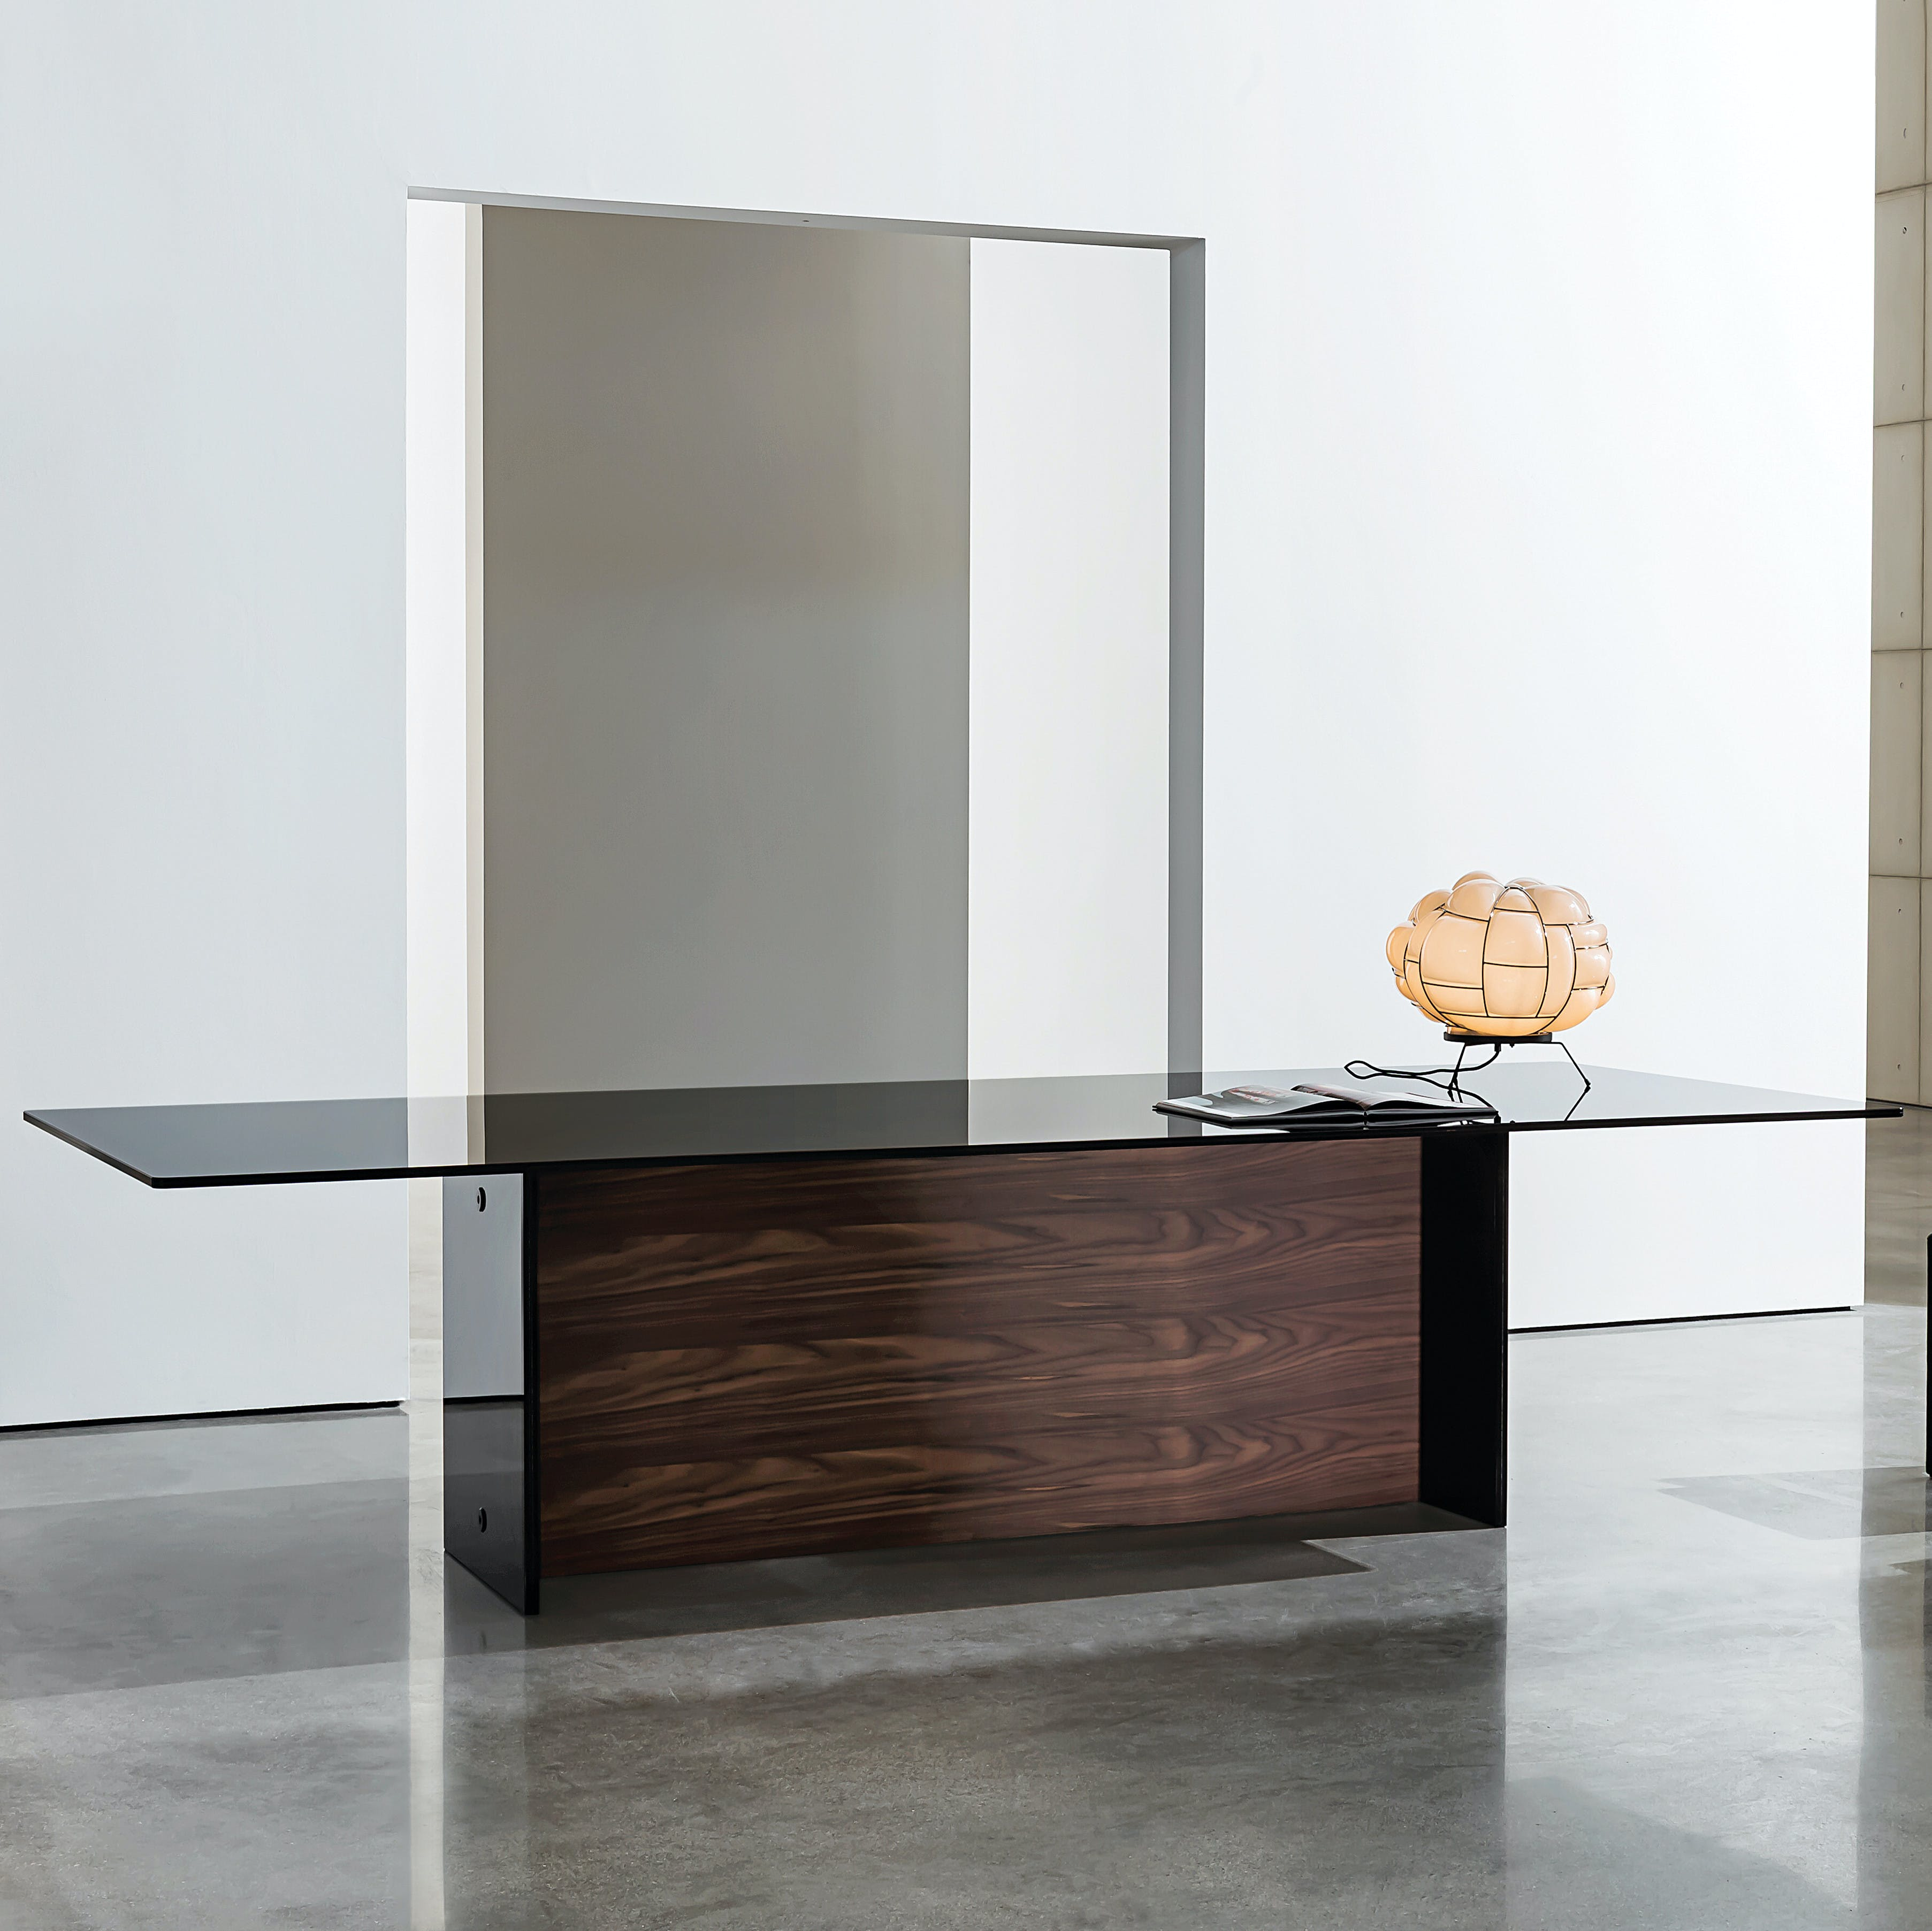 Regolo-double-base-dining-table-by-Sovet-With-glass-top